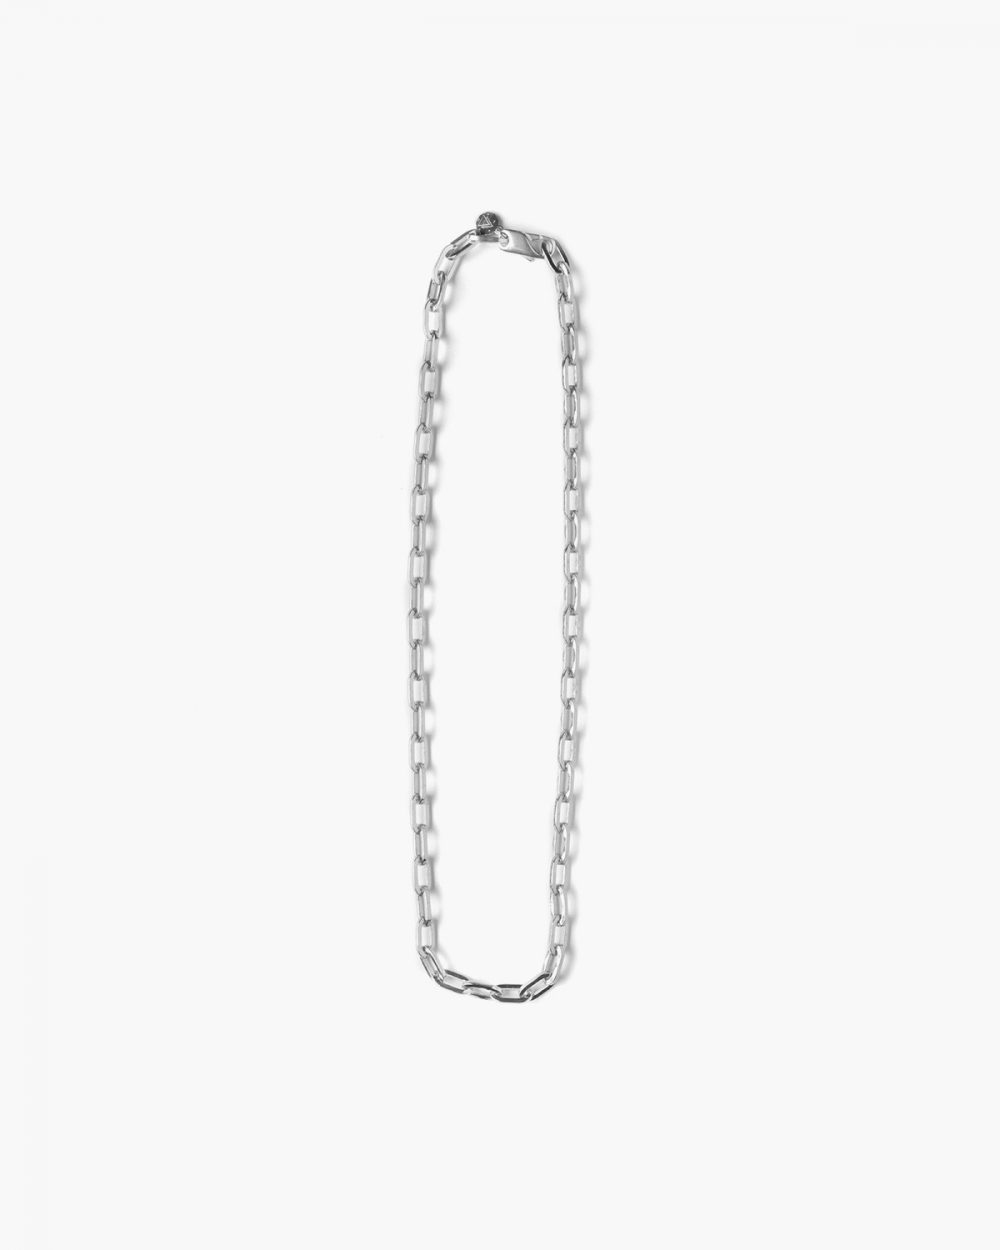 Necklaces SILVER MEDIUM OVAL BOX CHAIN NECKLACE NOVE25